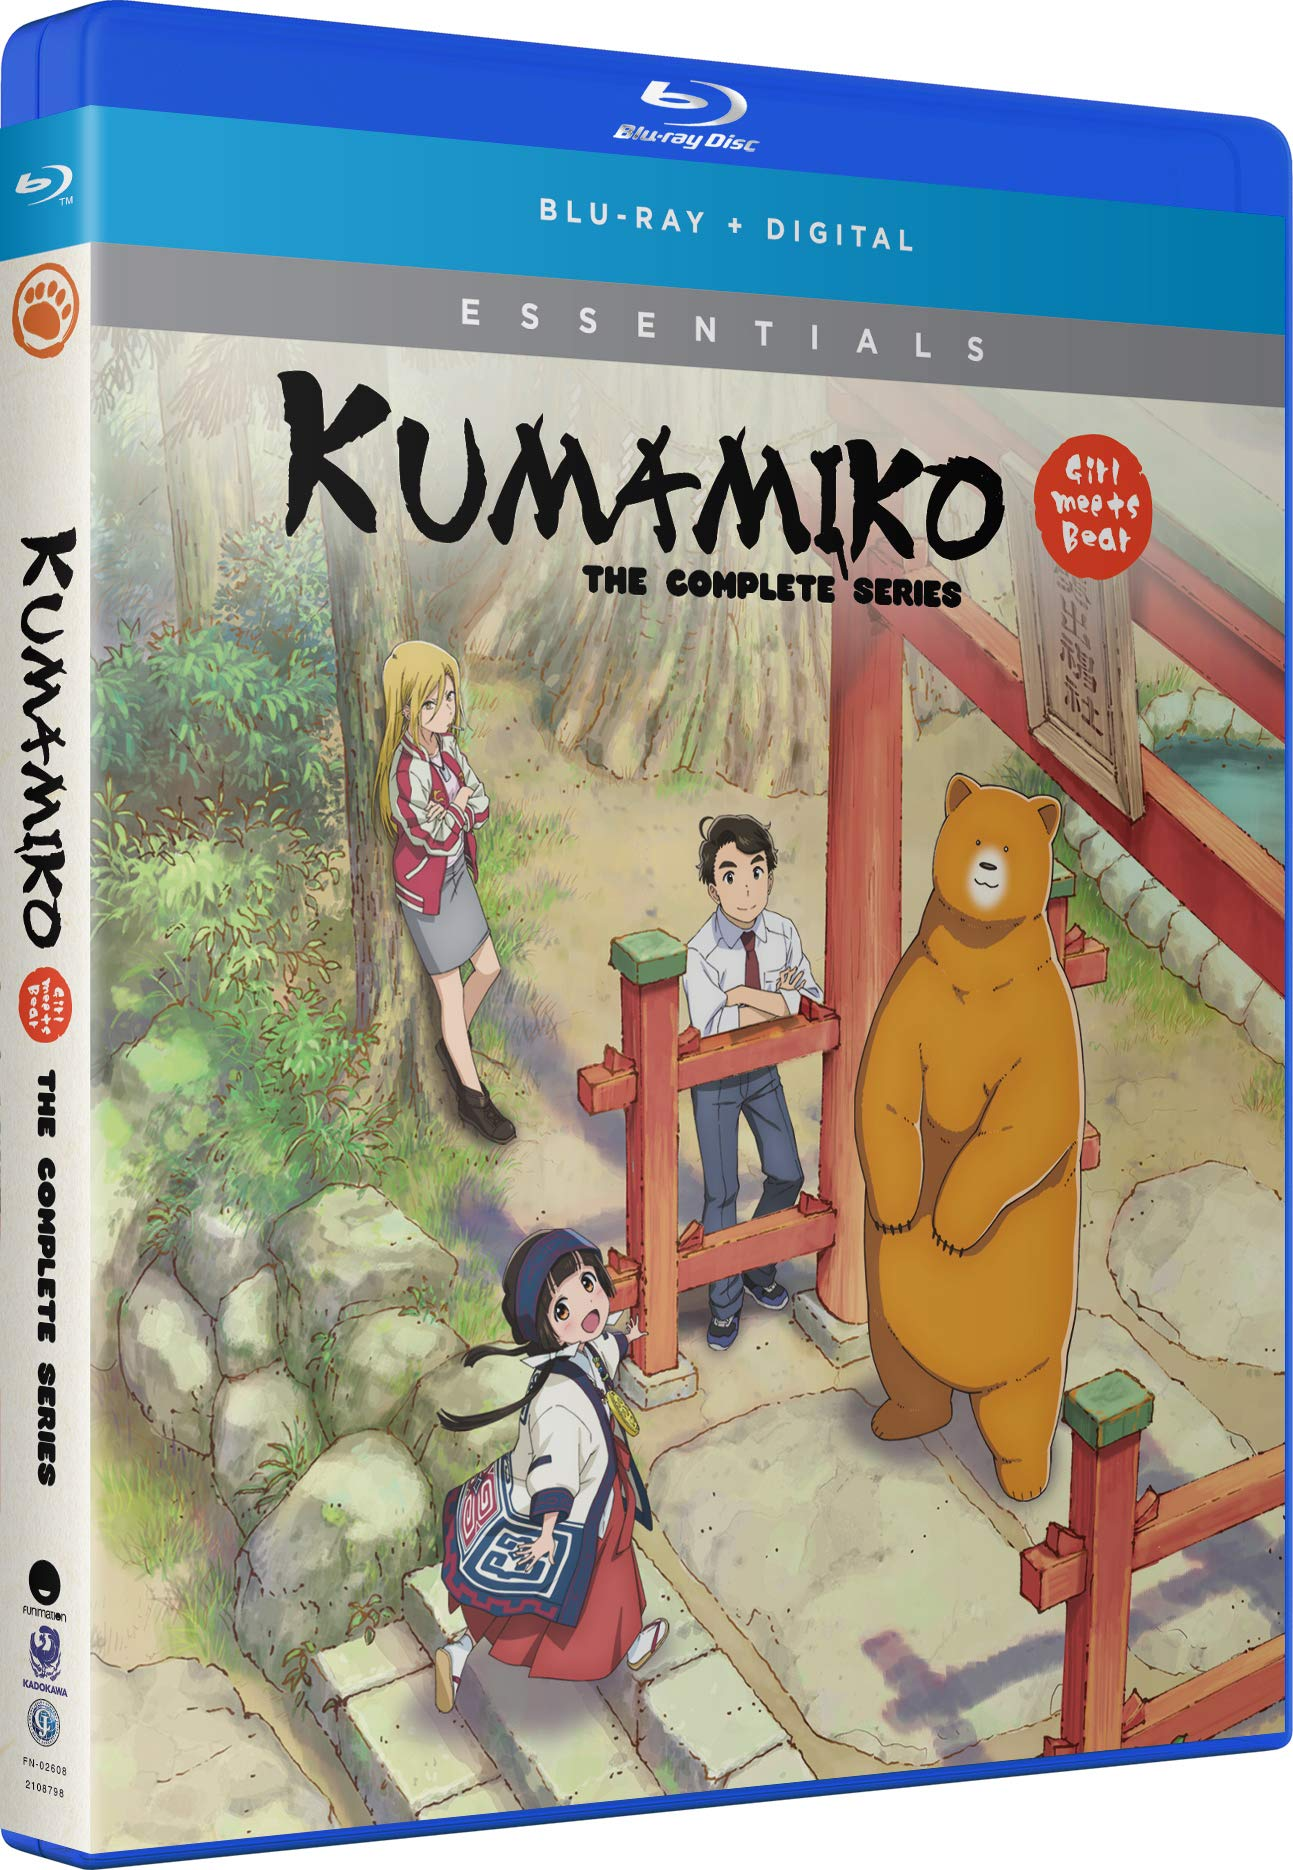 Blu-ray : Kuma Miko: The Complete Series (Subtitled, Digital Copy, 2 Pack)